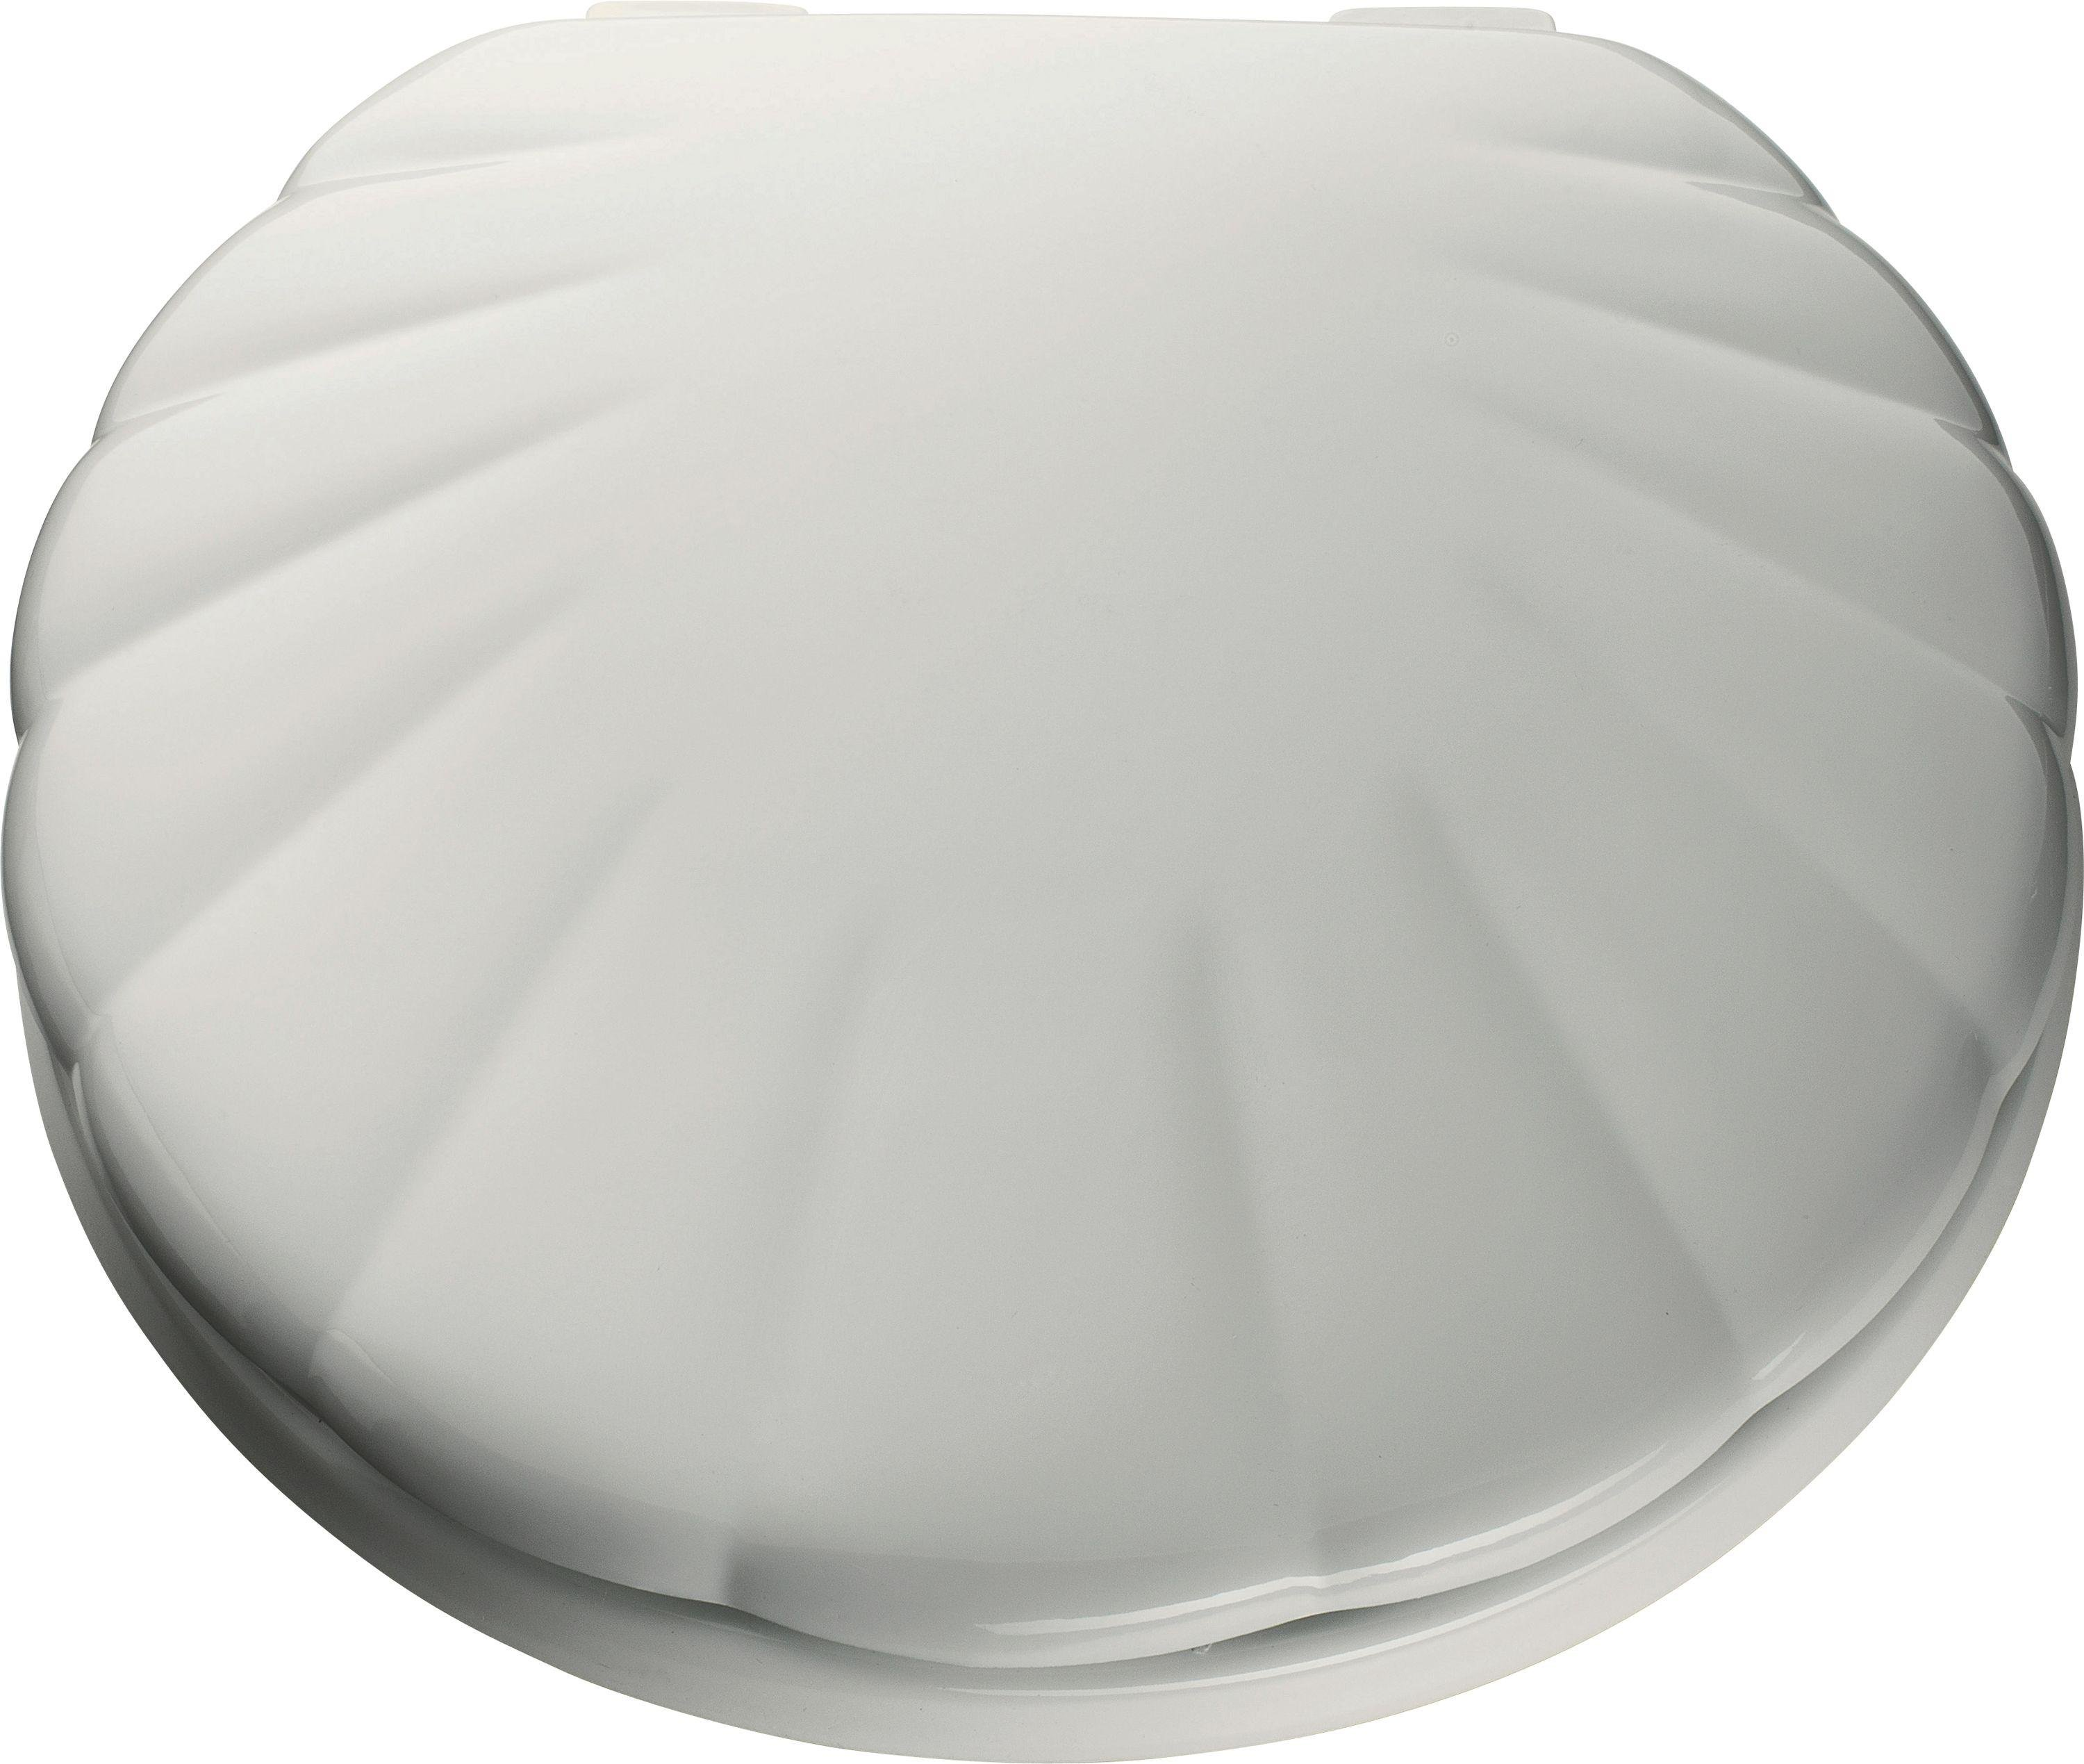 home shell toilet seat white. Black Bedroom Furniture Sets. Home Design Ideas